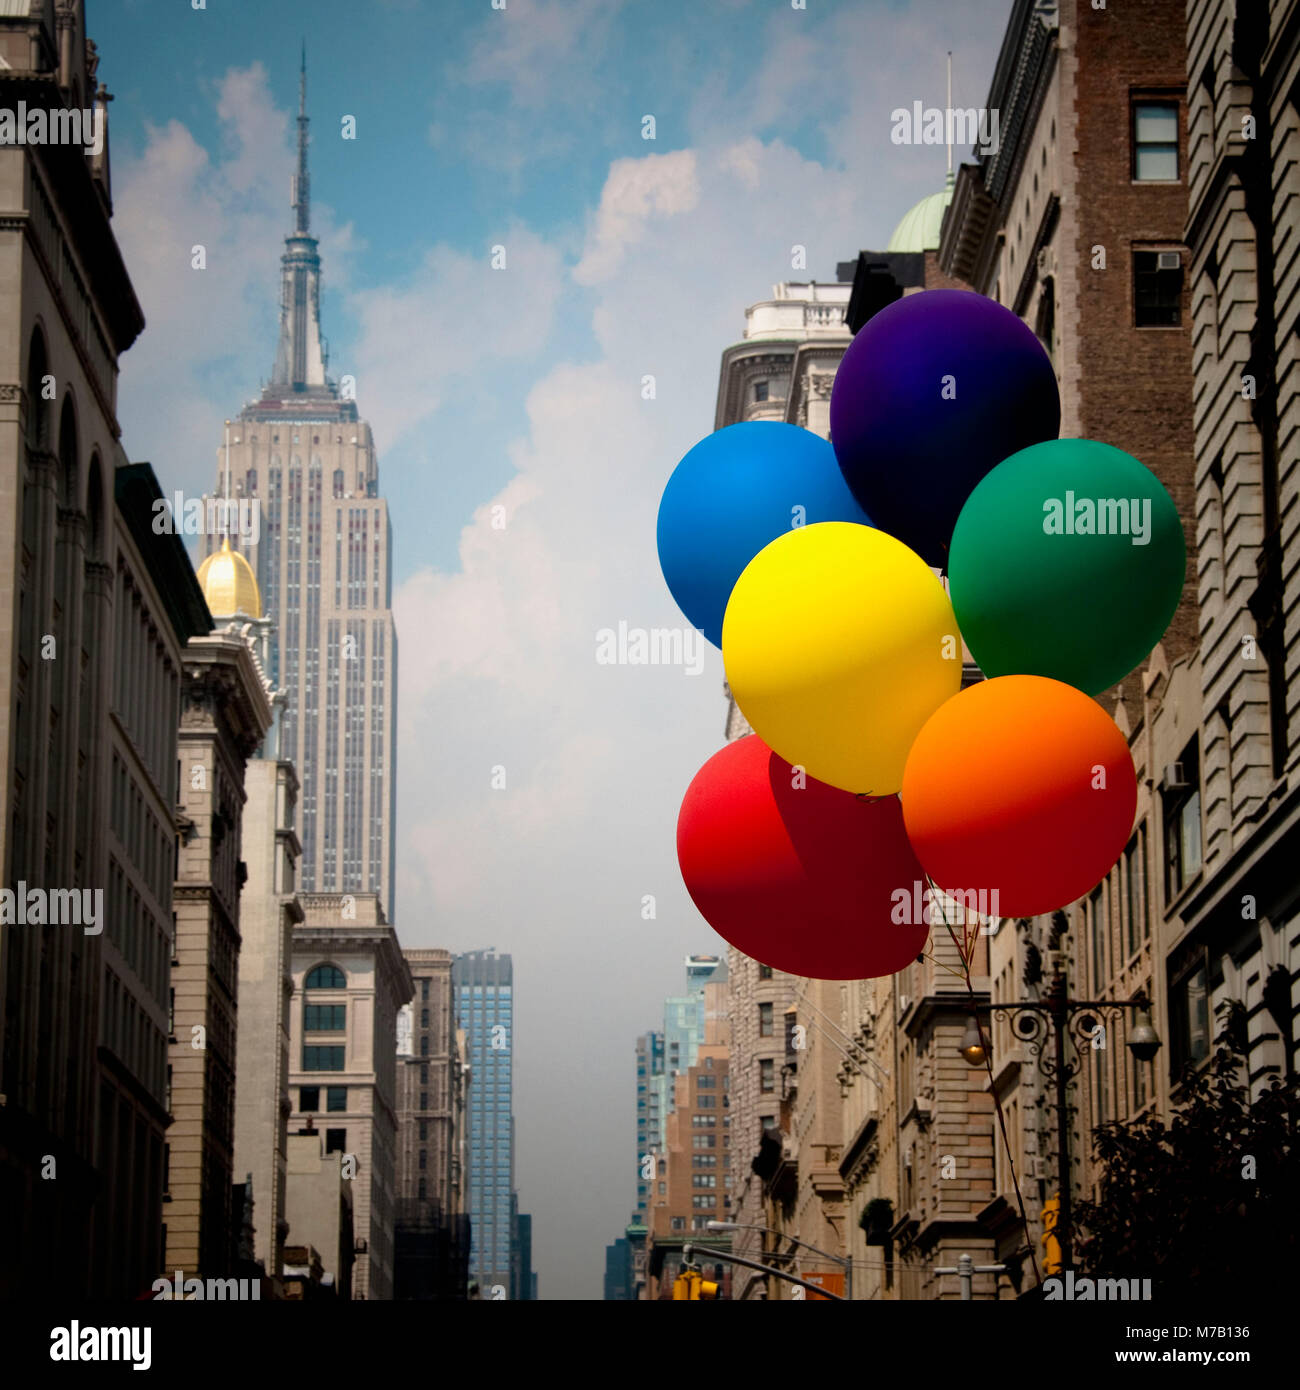 Rainbow color balloons in front of buildings, Empire State Building, New York City, New York State, USA - Stock Image